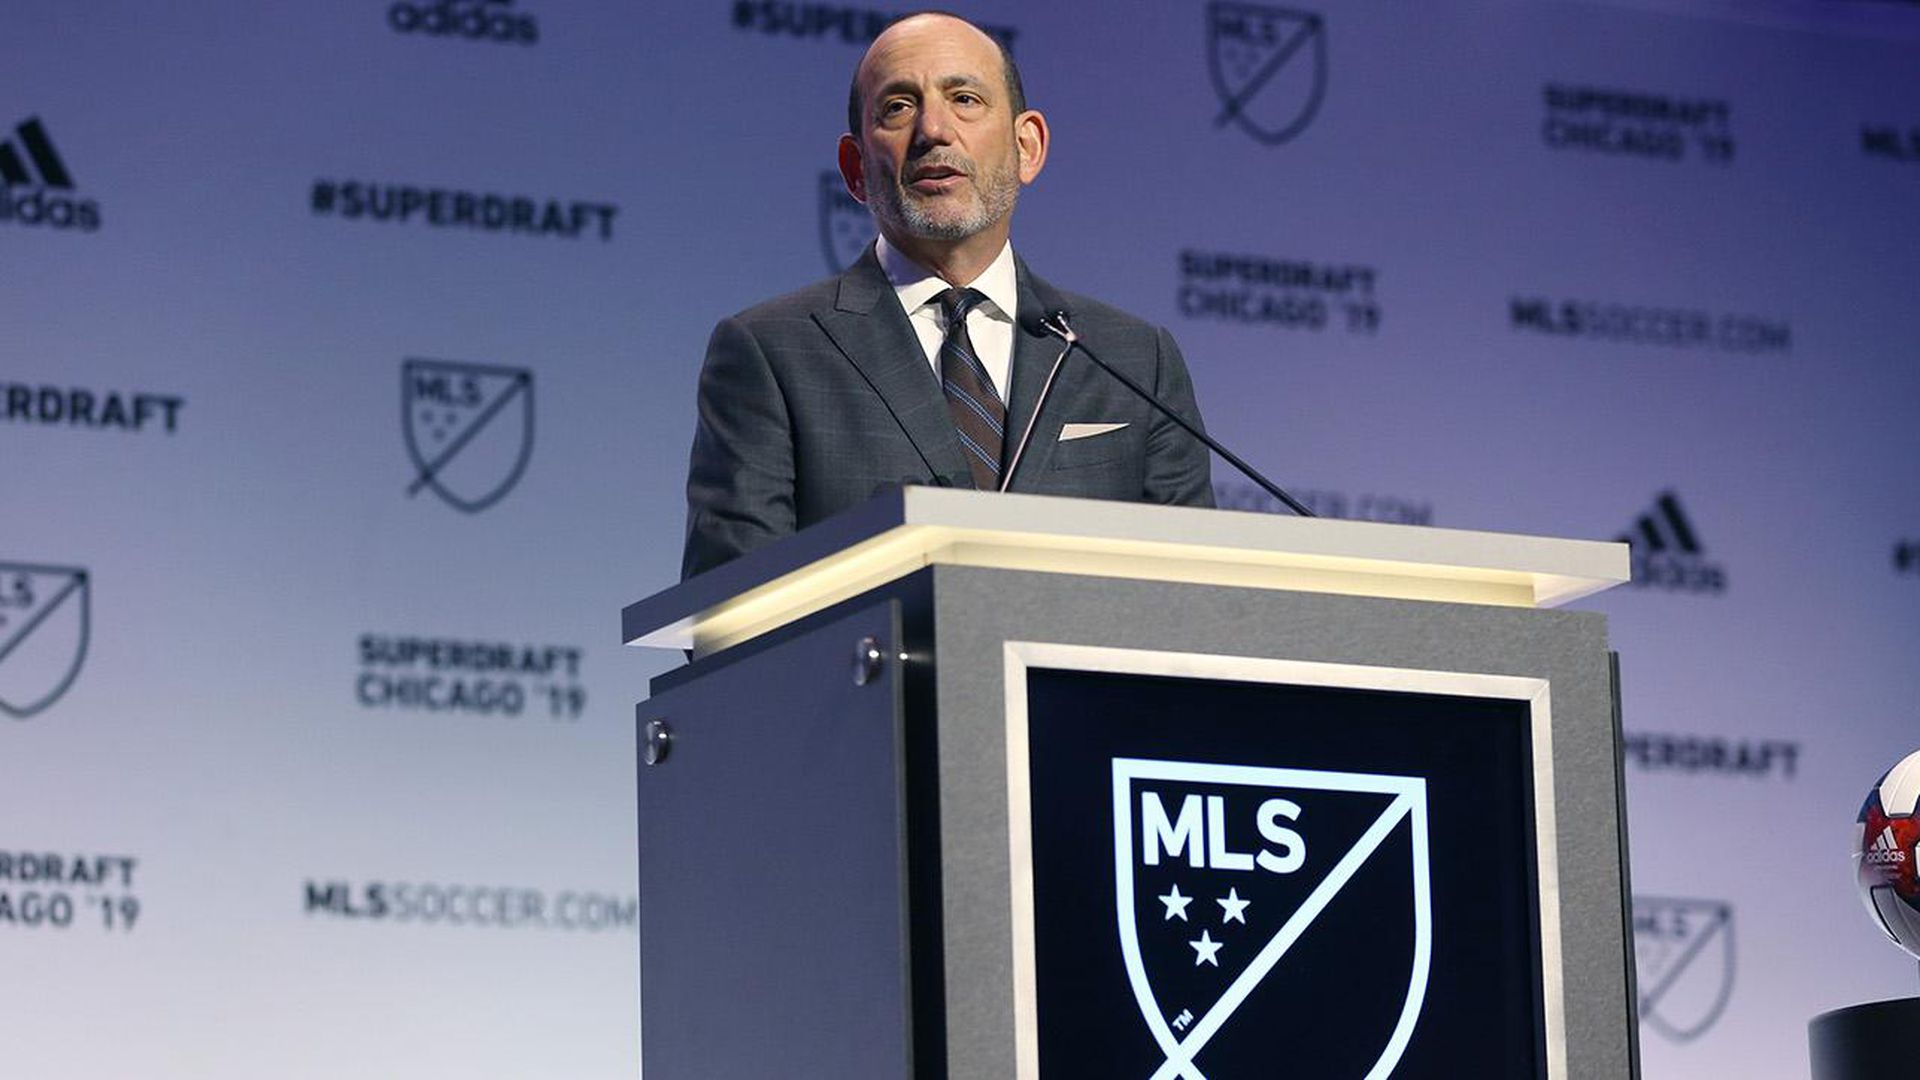 In this image, Don Garber stands in a suit and speaks from behind a podium.